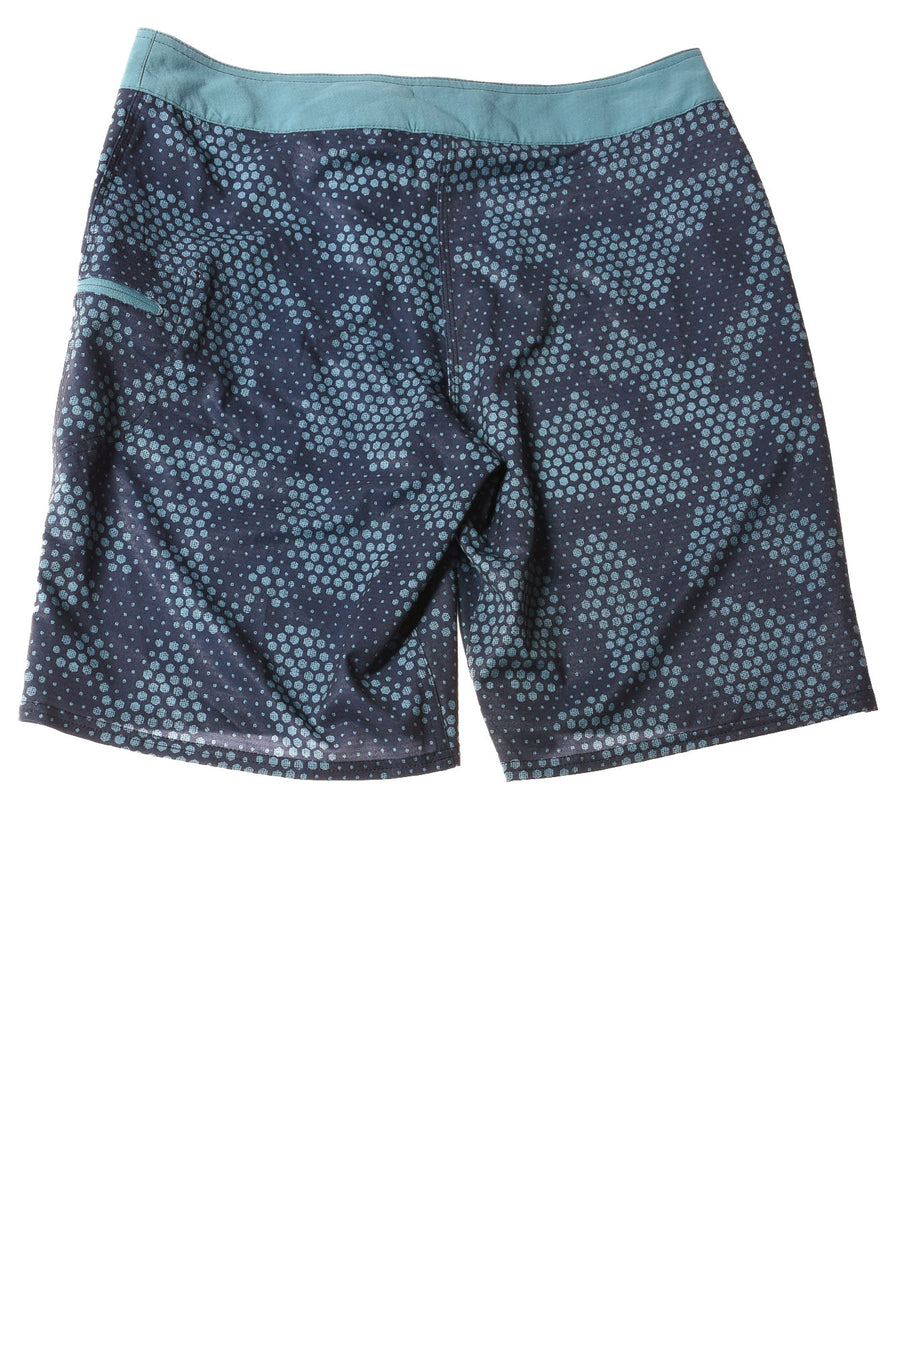 USED The North Face Men's Shorts 32 Blue /Print